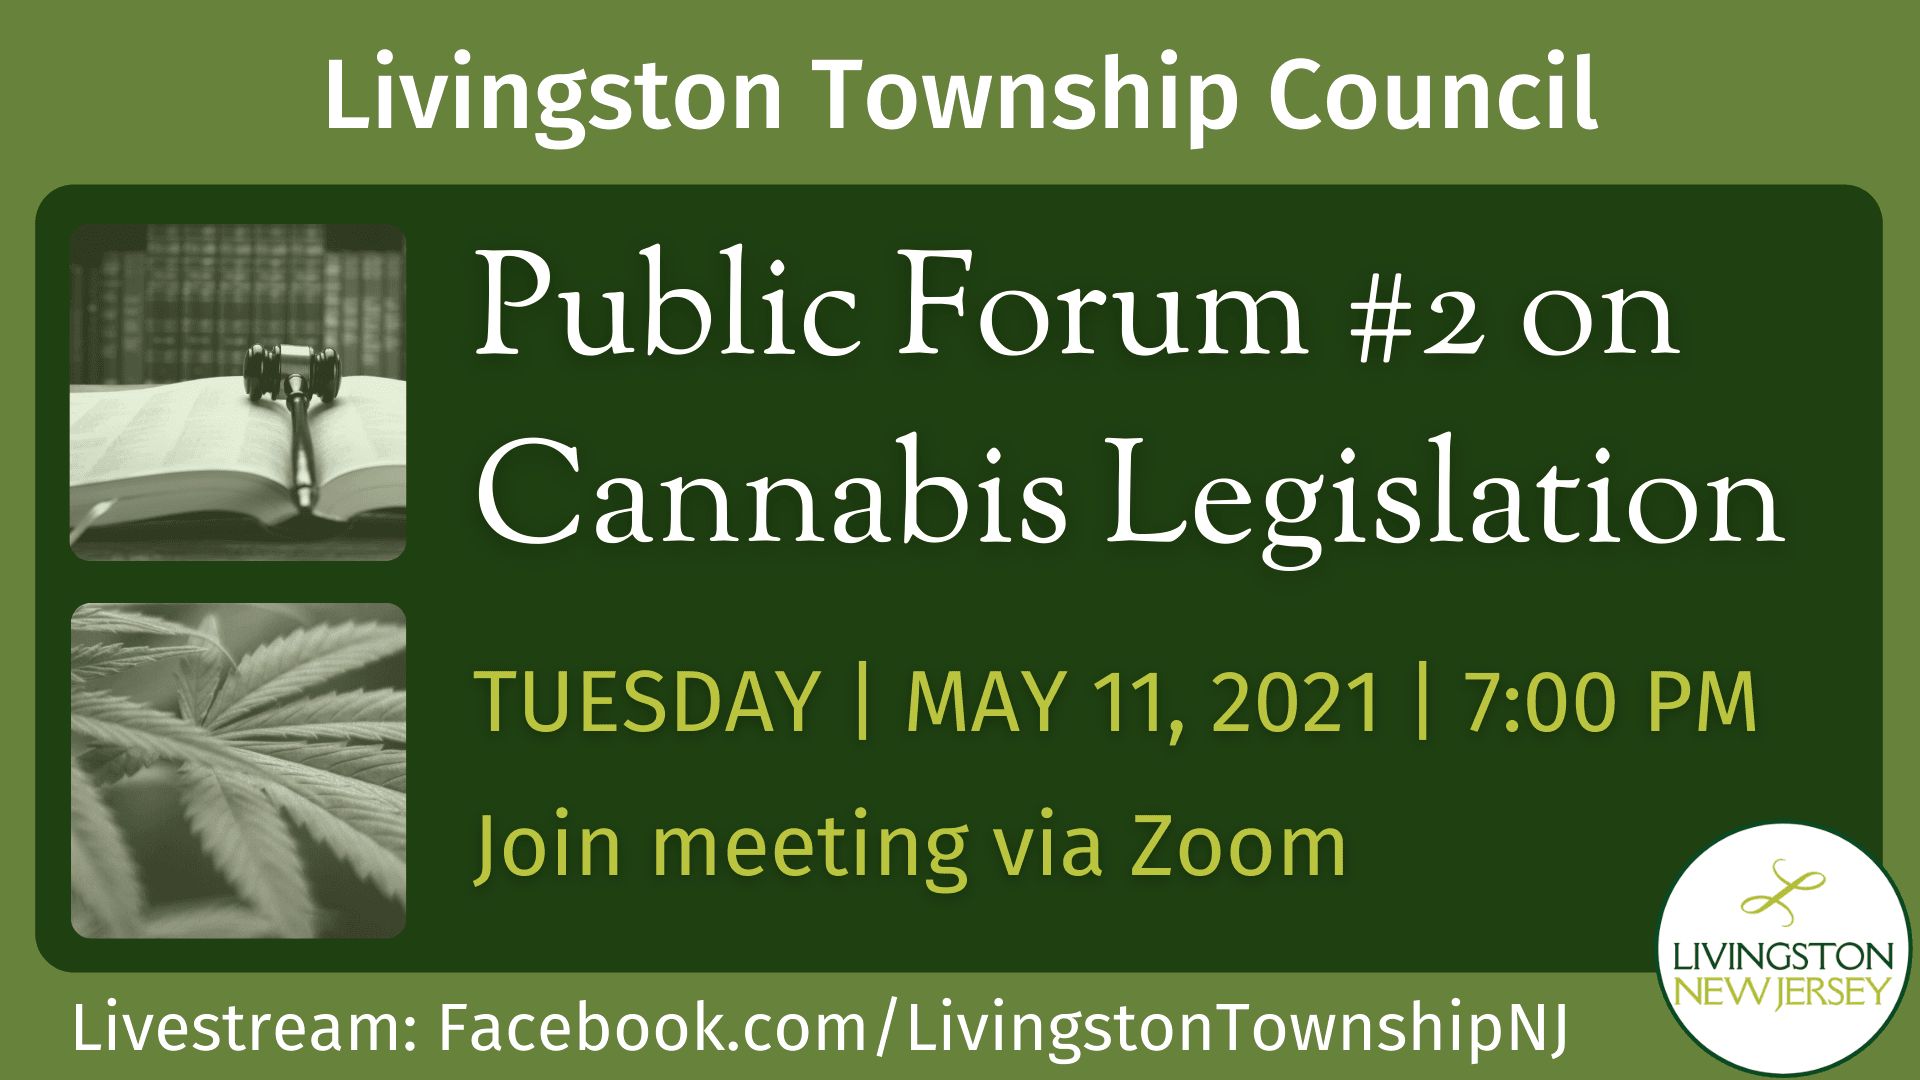 Town Council 2nd public forum on cannabis legislation - May 11, 2021 at 7 pm. Join via Zoom